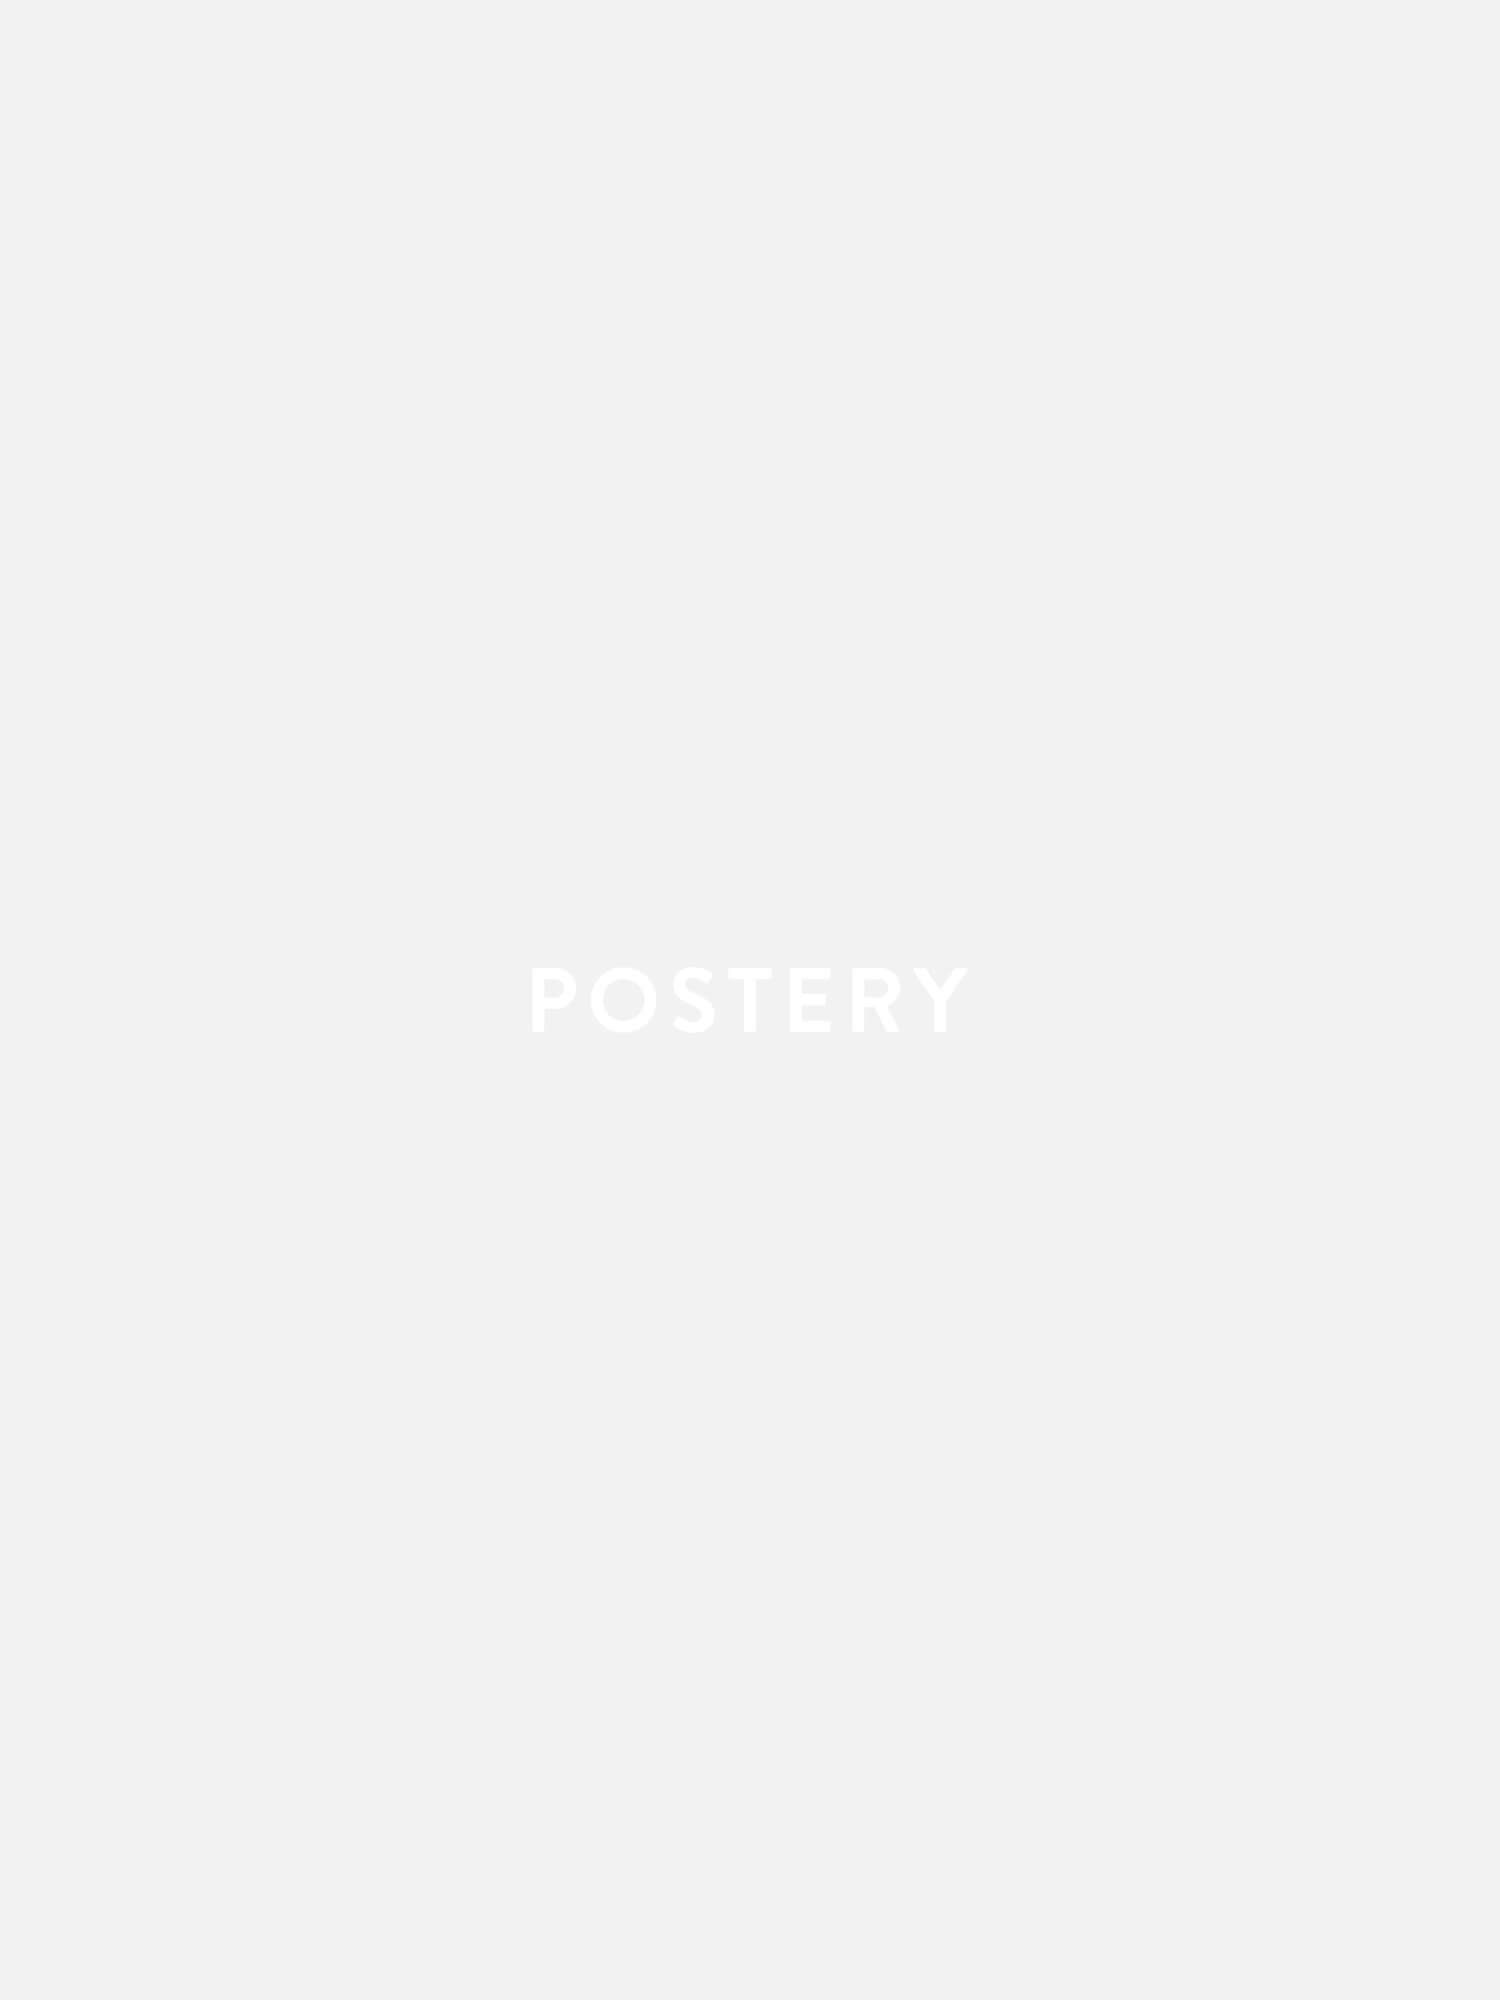 Philosopher's Room Poster